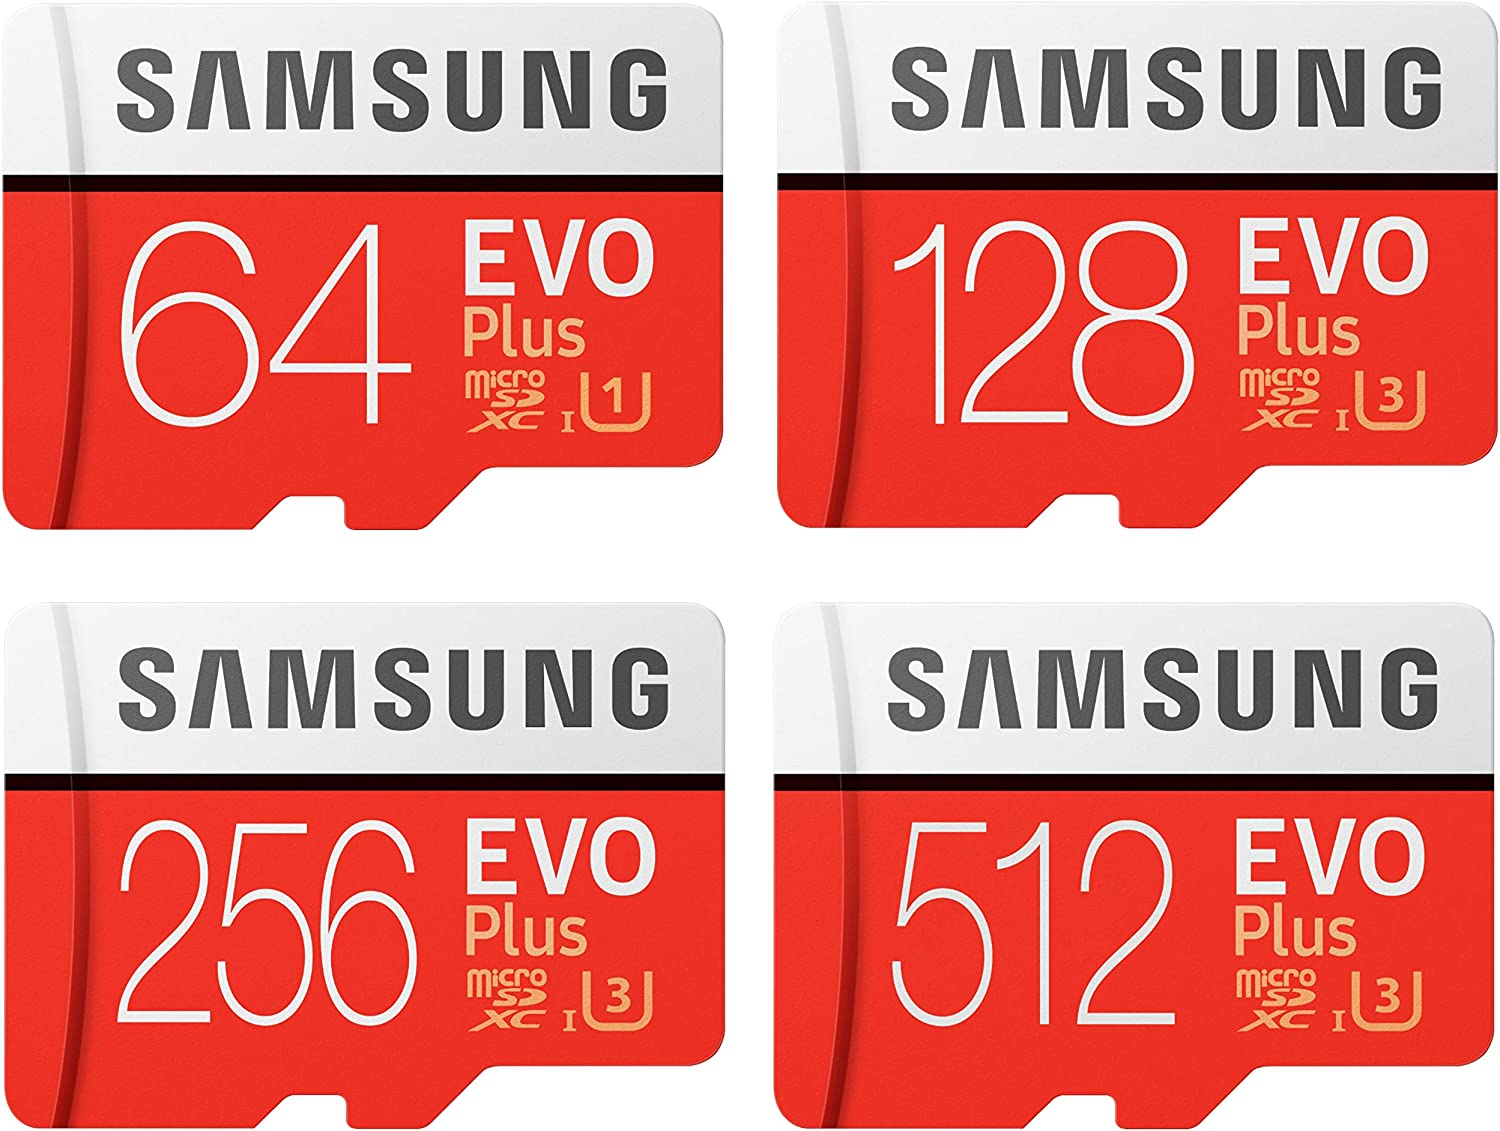 Samsung Evo Plus Micro SD SDXC Class 10 Memory Card U3 100MB/S with Plastic Cases (256GB, 1 Pack)